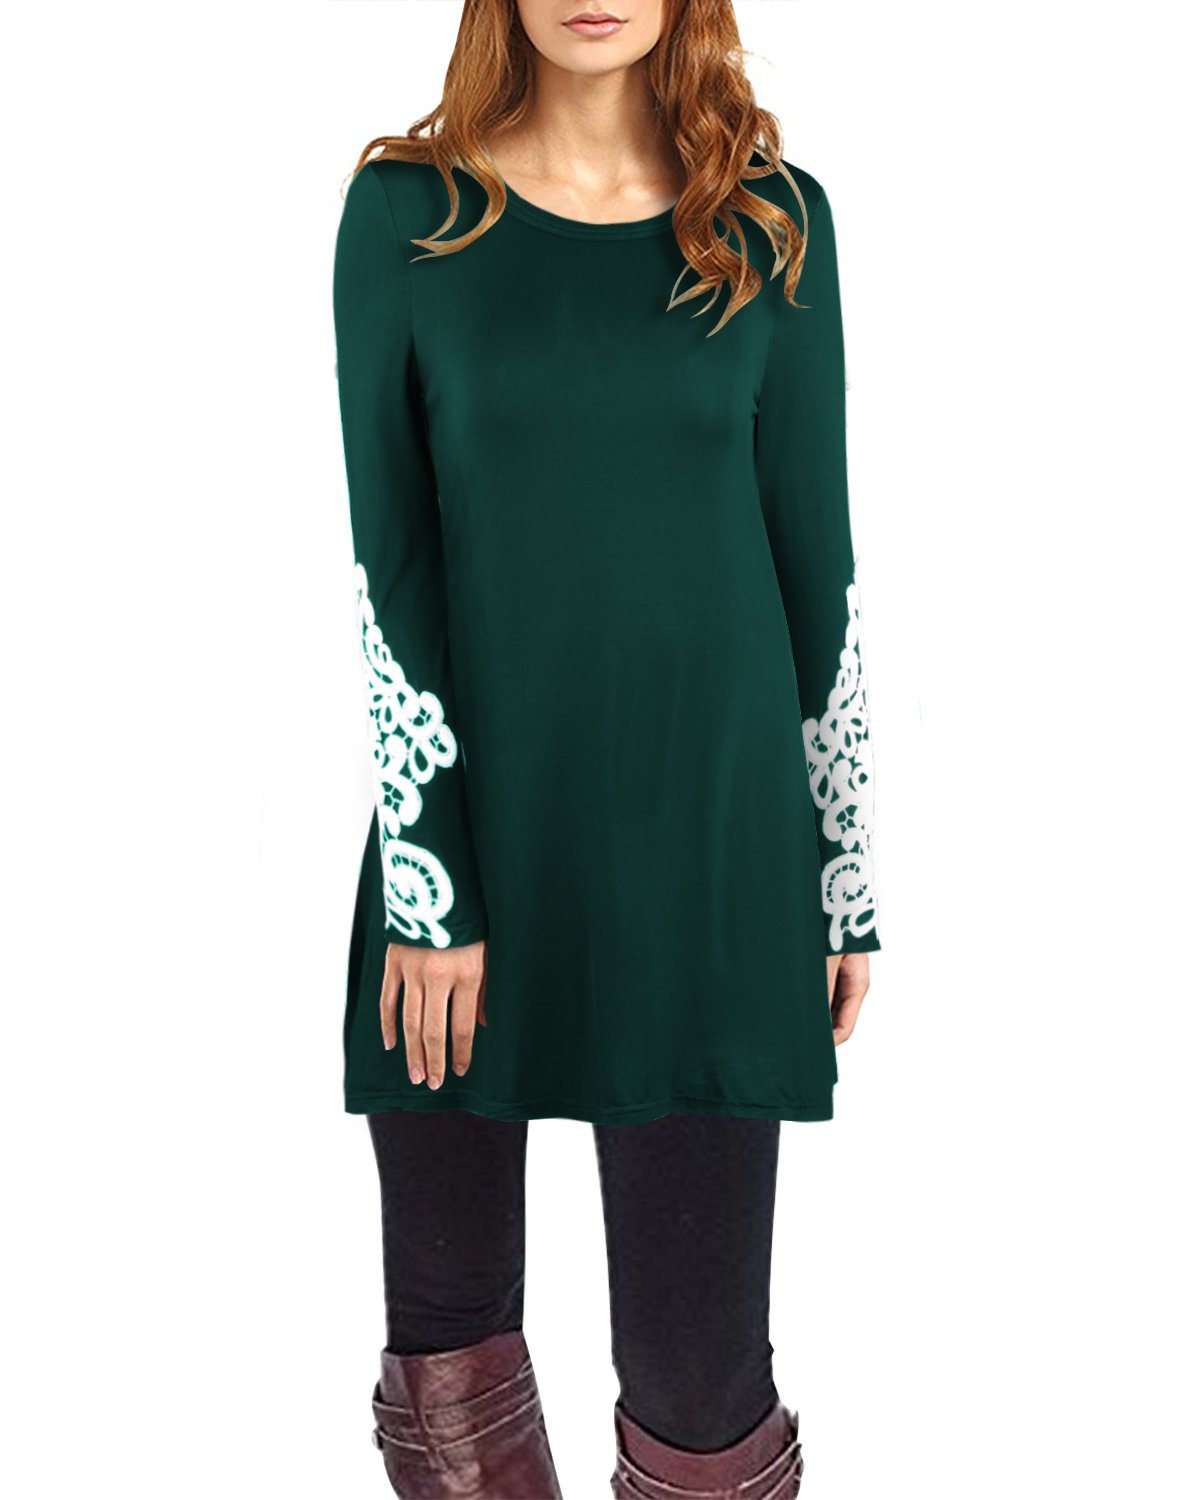 OUGES Women's Long Sleeve Lace Casual Loose Tunic Tops(Green,M)